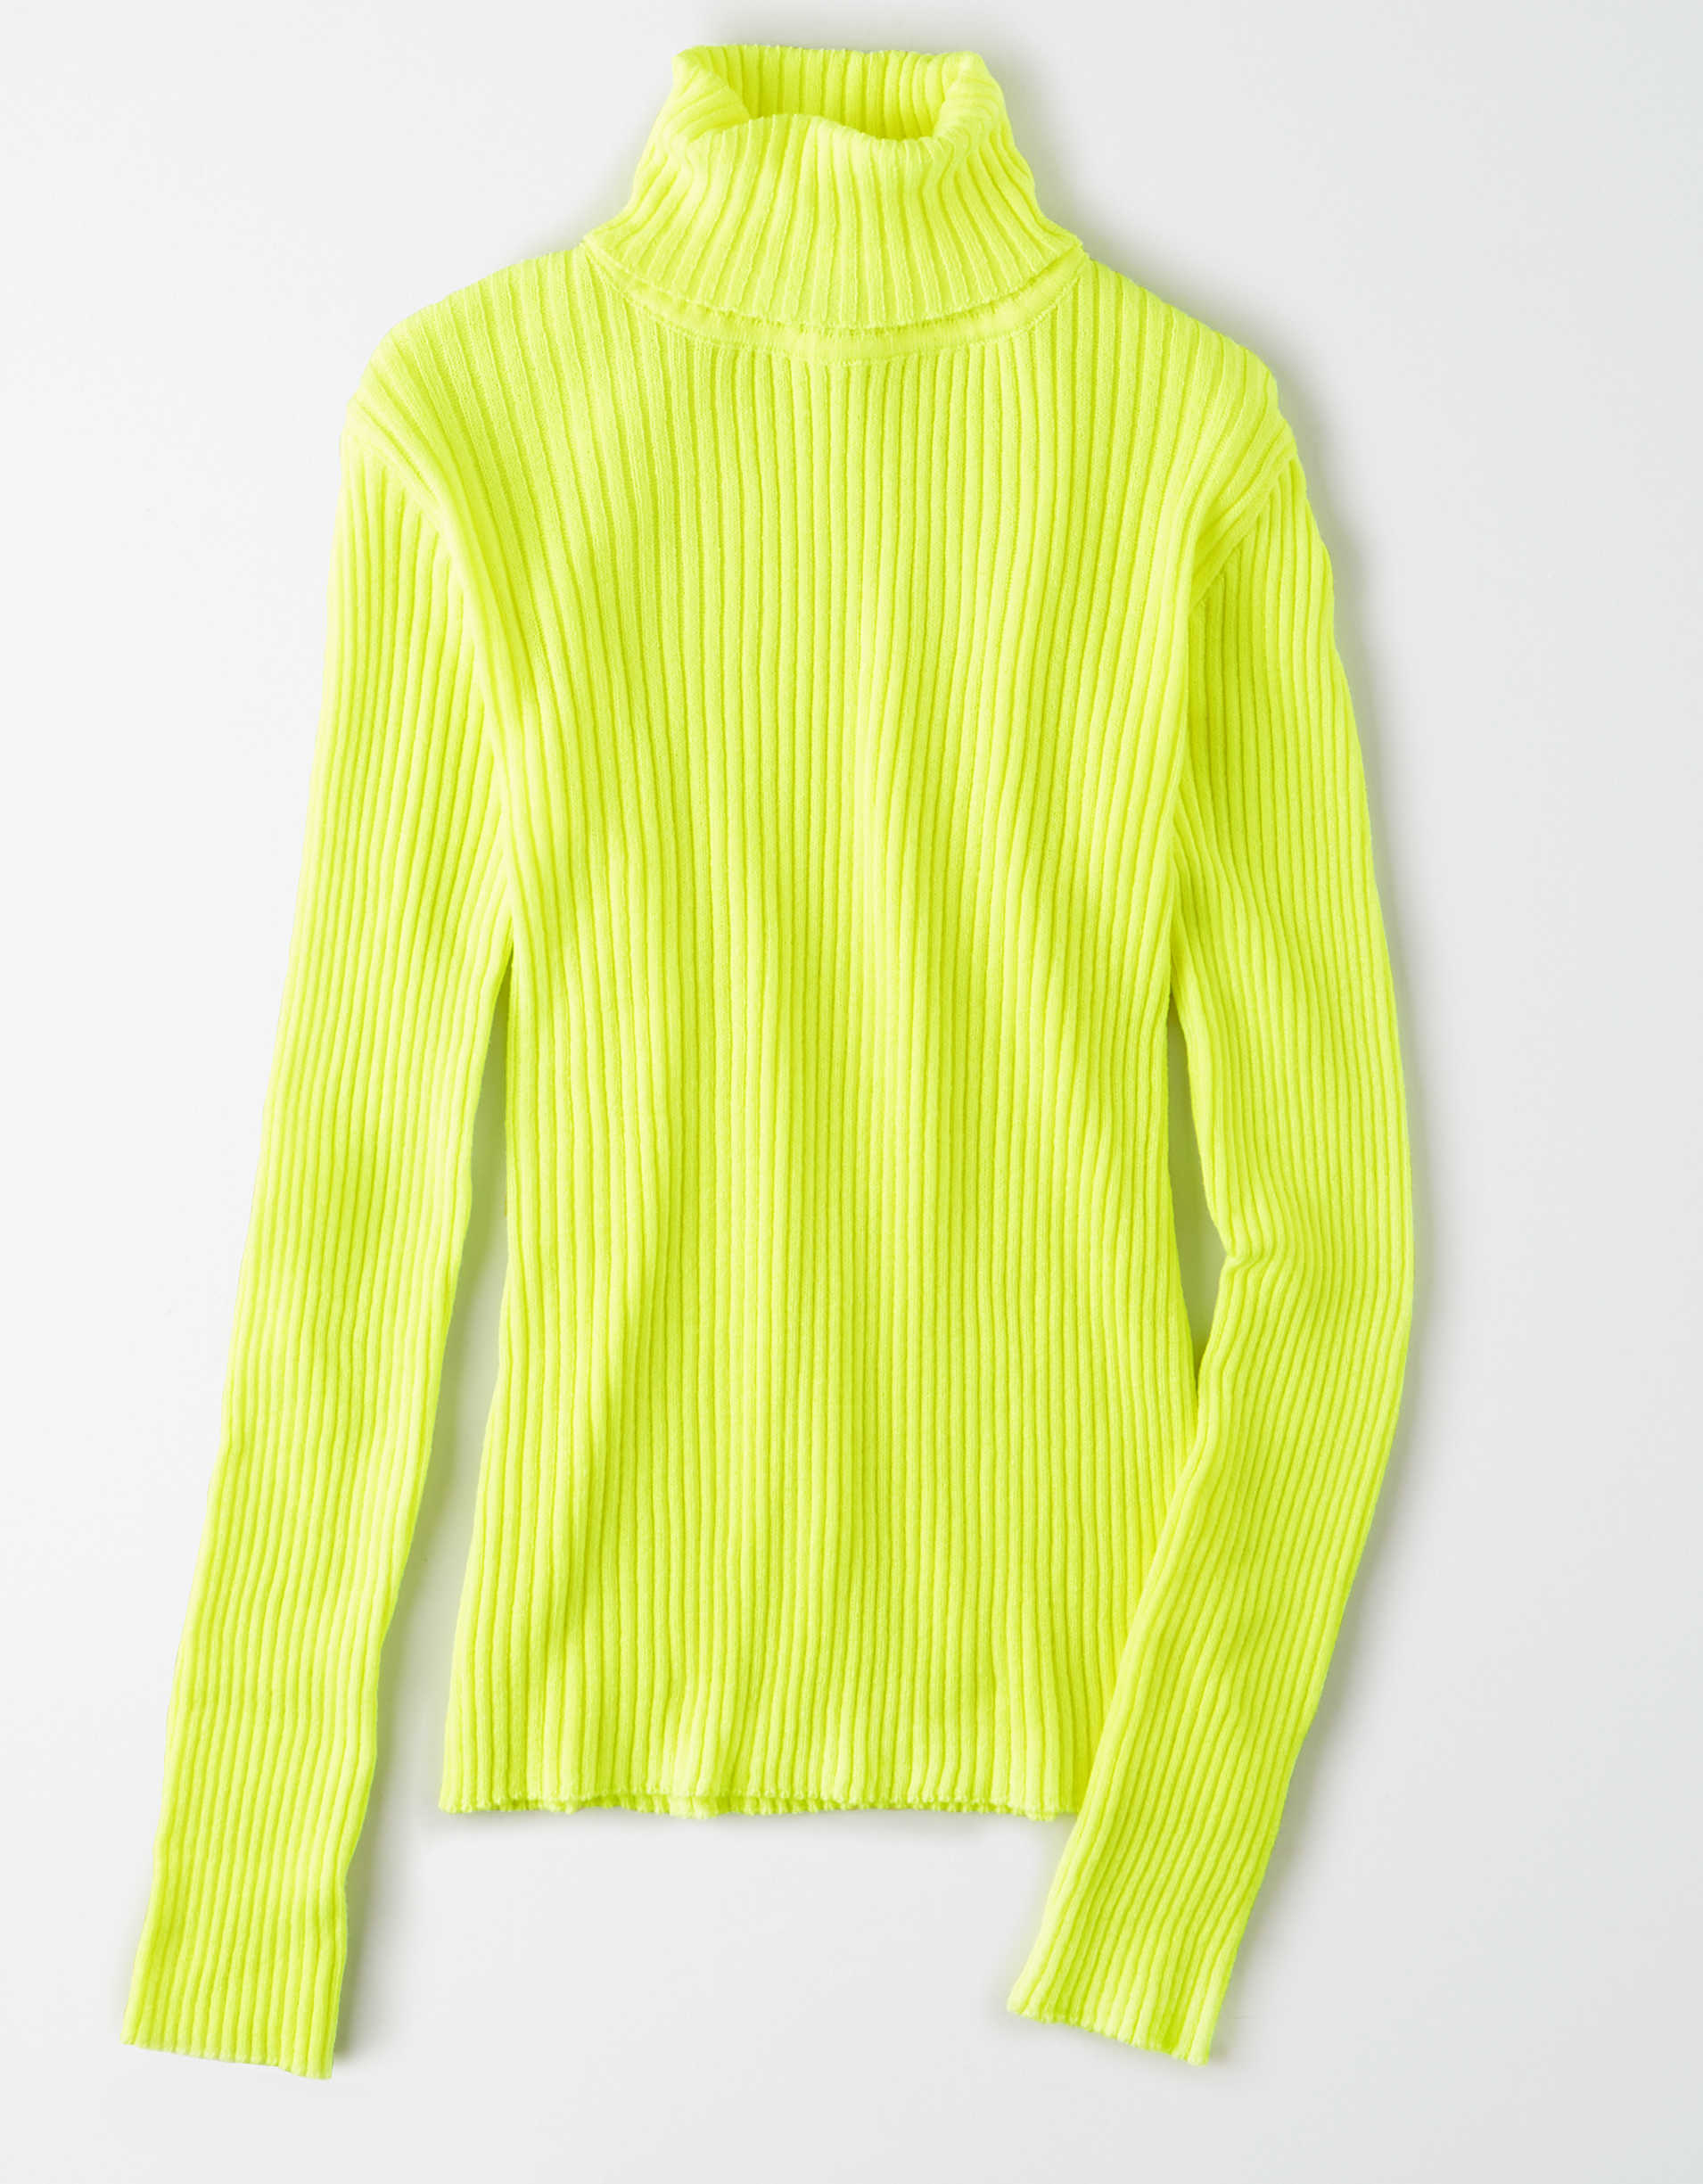 AE Studio Turtleneck Sweater